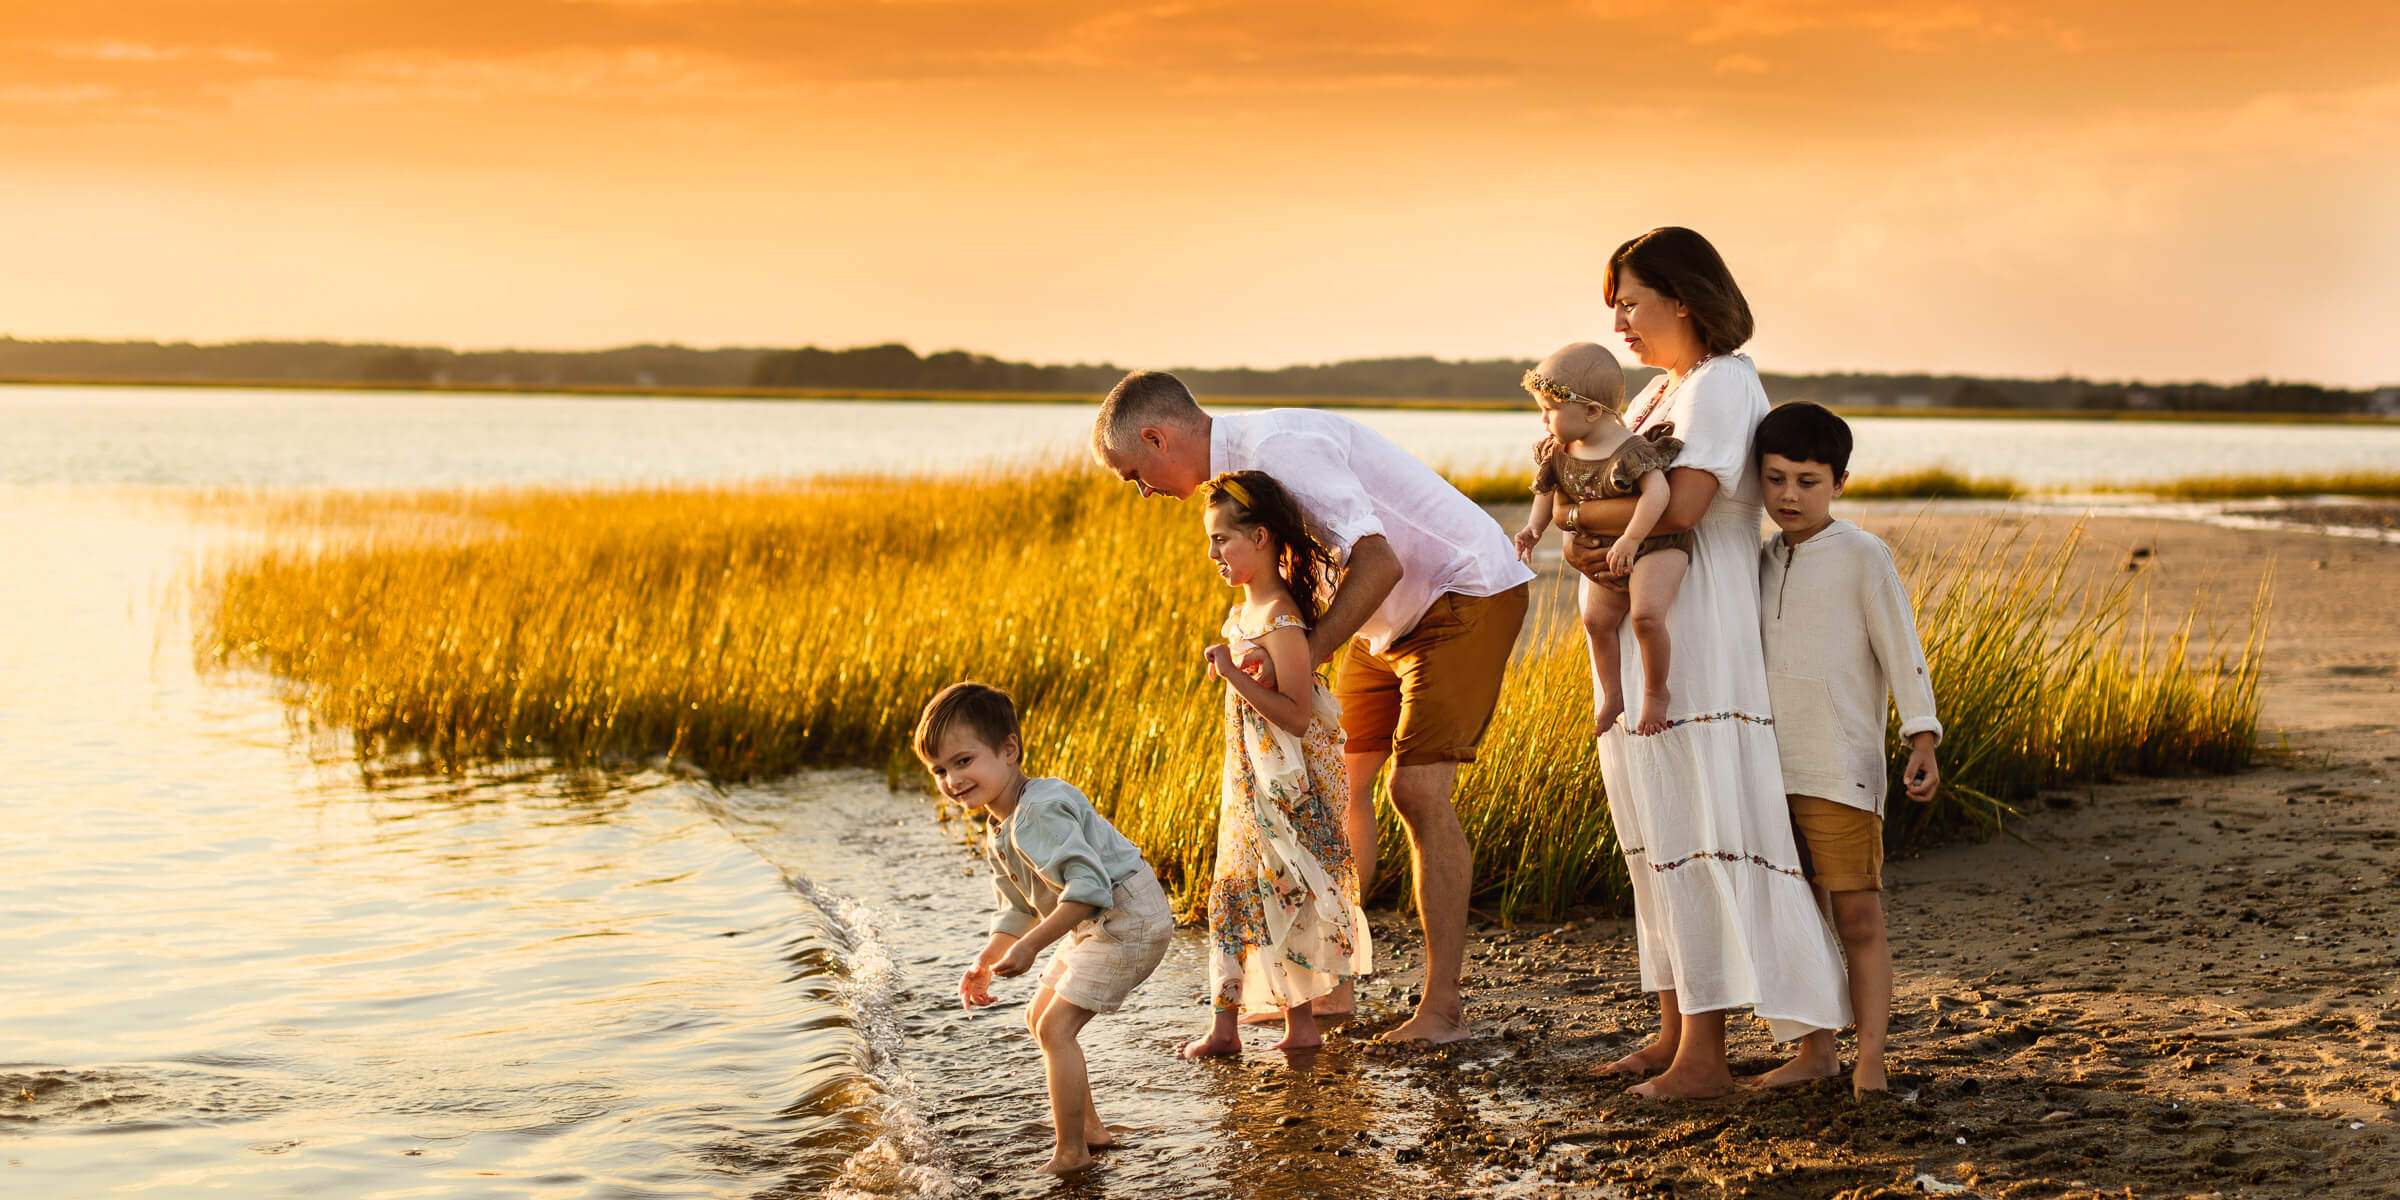 Duxbury Beach Family Photo Session cover photo-1-2